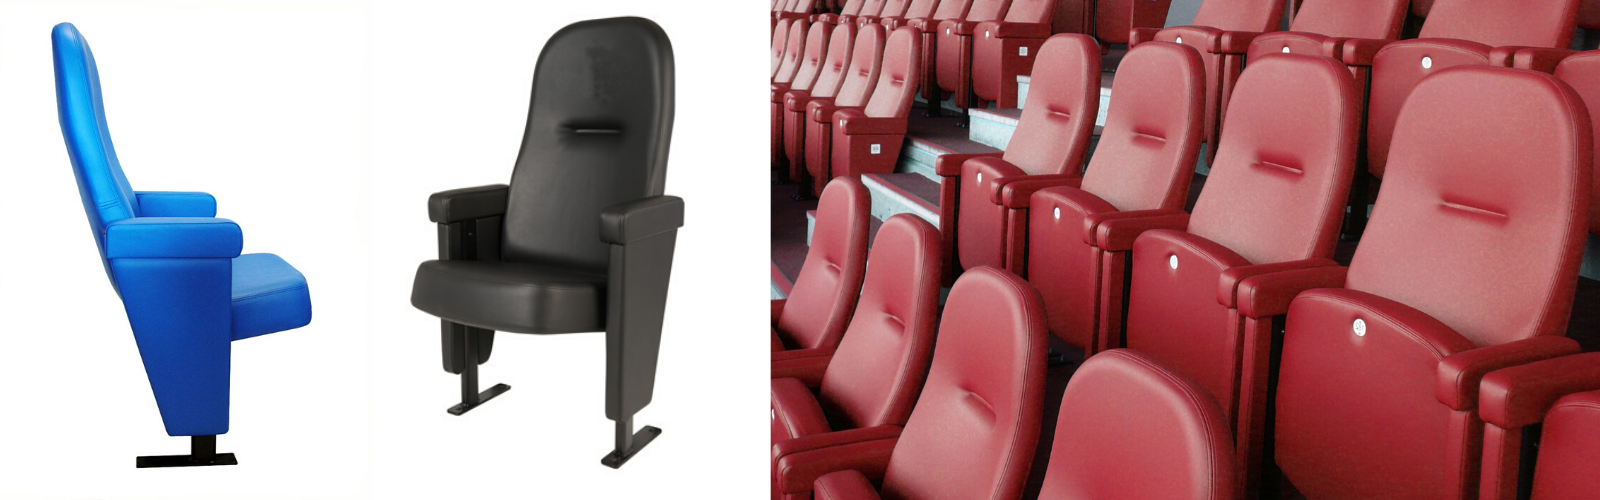 Evertaut's Olympian premium stadium seating shown upholstered in blue and black vinyl alongside an installation in a stadium upholstered in red